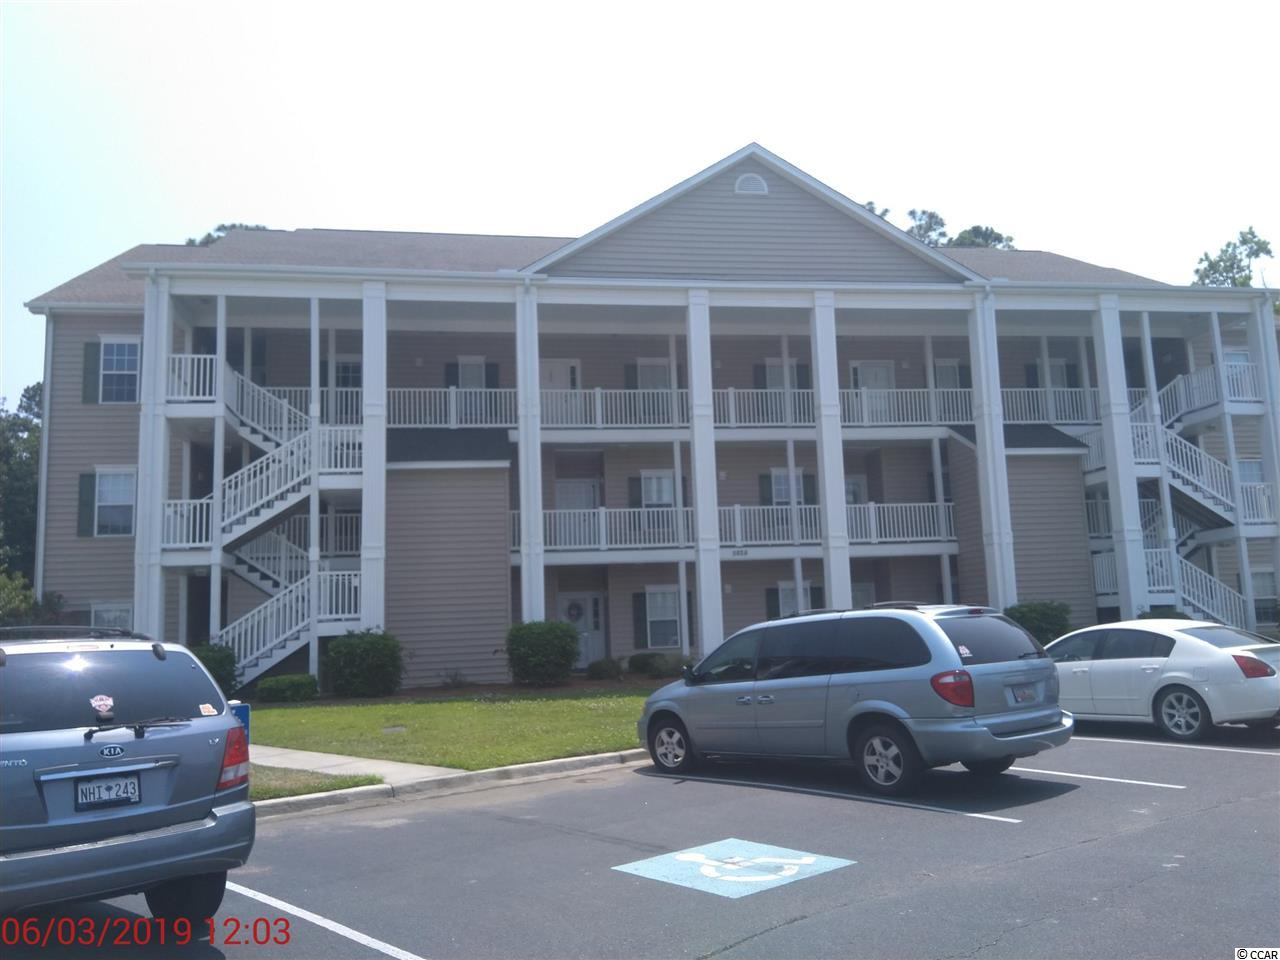 Incredible and well maintained 3 bedroom and 2 full bath condo overlooking the golf course is ready to enjoy! This unit has 3 large bedrooms with plenty of closet space. The living room is very spacious and great for entertaining with plenty of natural sunlight during the day. The kitchen has plenty of cabinets and cooking space guaranteed to please any chef. The oversized balcony has breathtaking views of the golf course and wooded area and wildlife. Marcliffe comes with a beautiful pool area for those hot summer days. This unit is Priced To Sell!!!! Put this condo at the top of your list and don't miss your chance to own a Golf course view in Paradise!!!